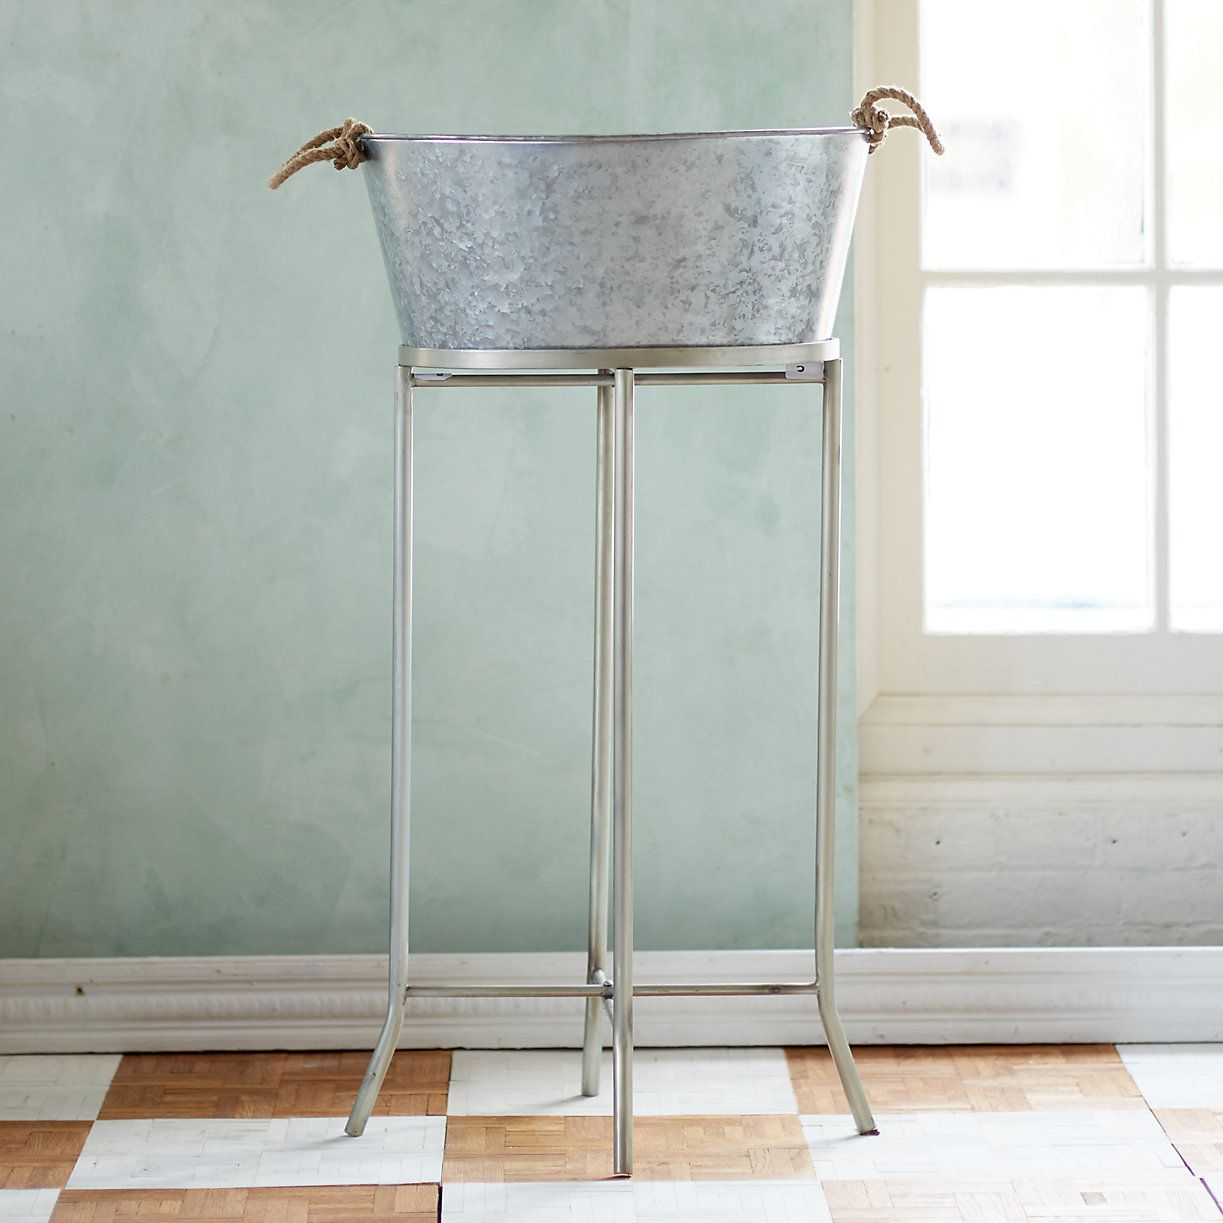 Serve Up Drinks For A Patio Party In This Galvanized Beverage Tub Elevated On Matching Metal Stand And Topped With Rope Handles Easy Carrying